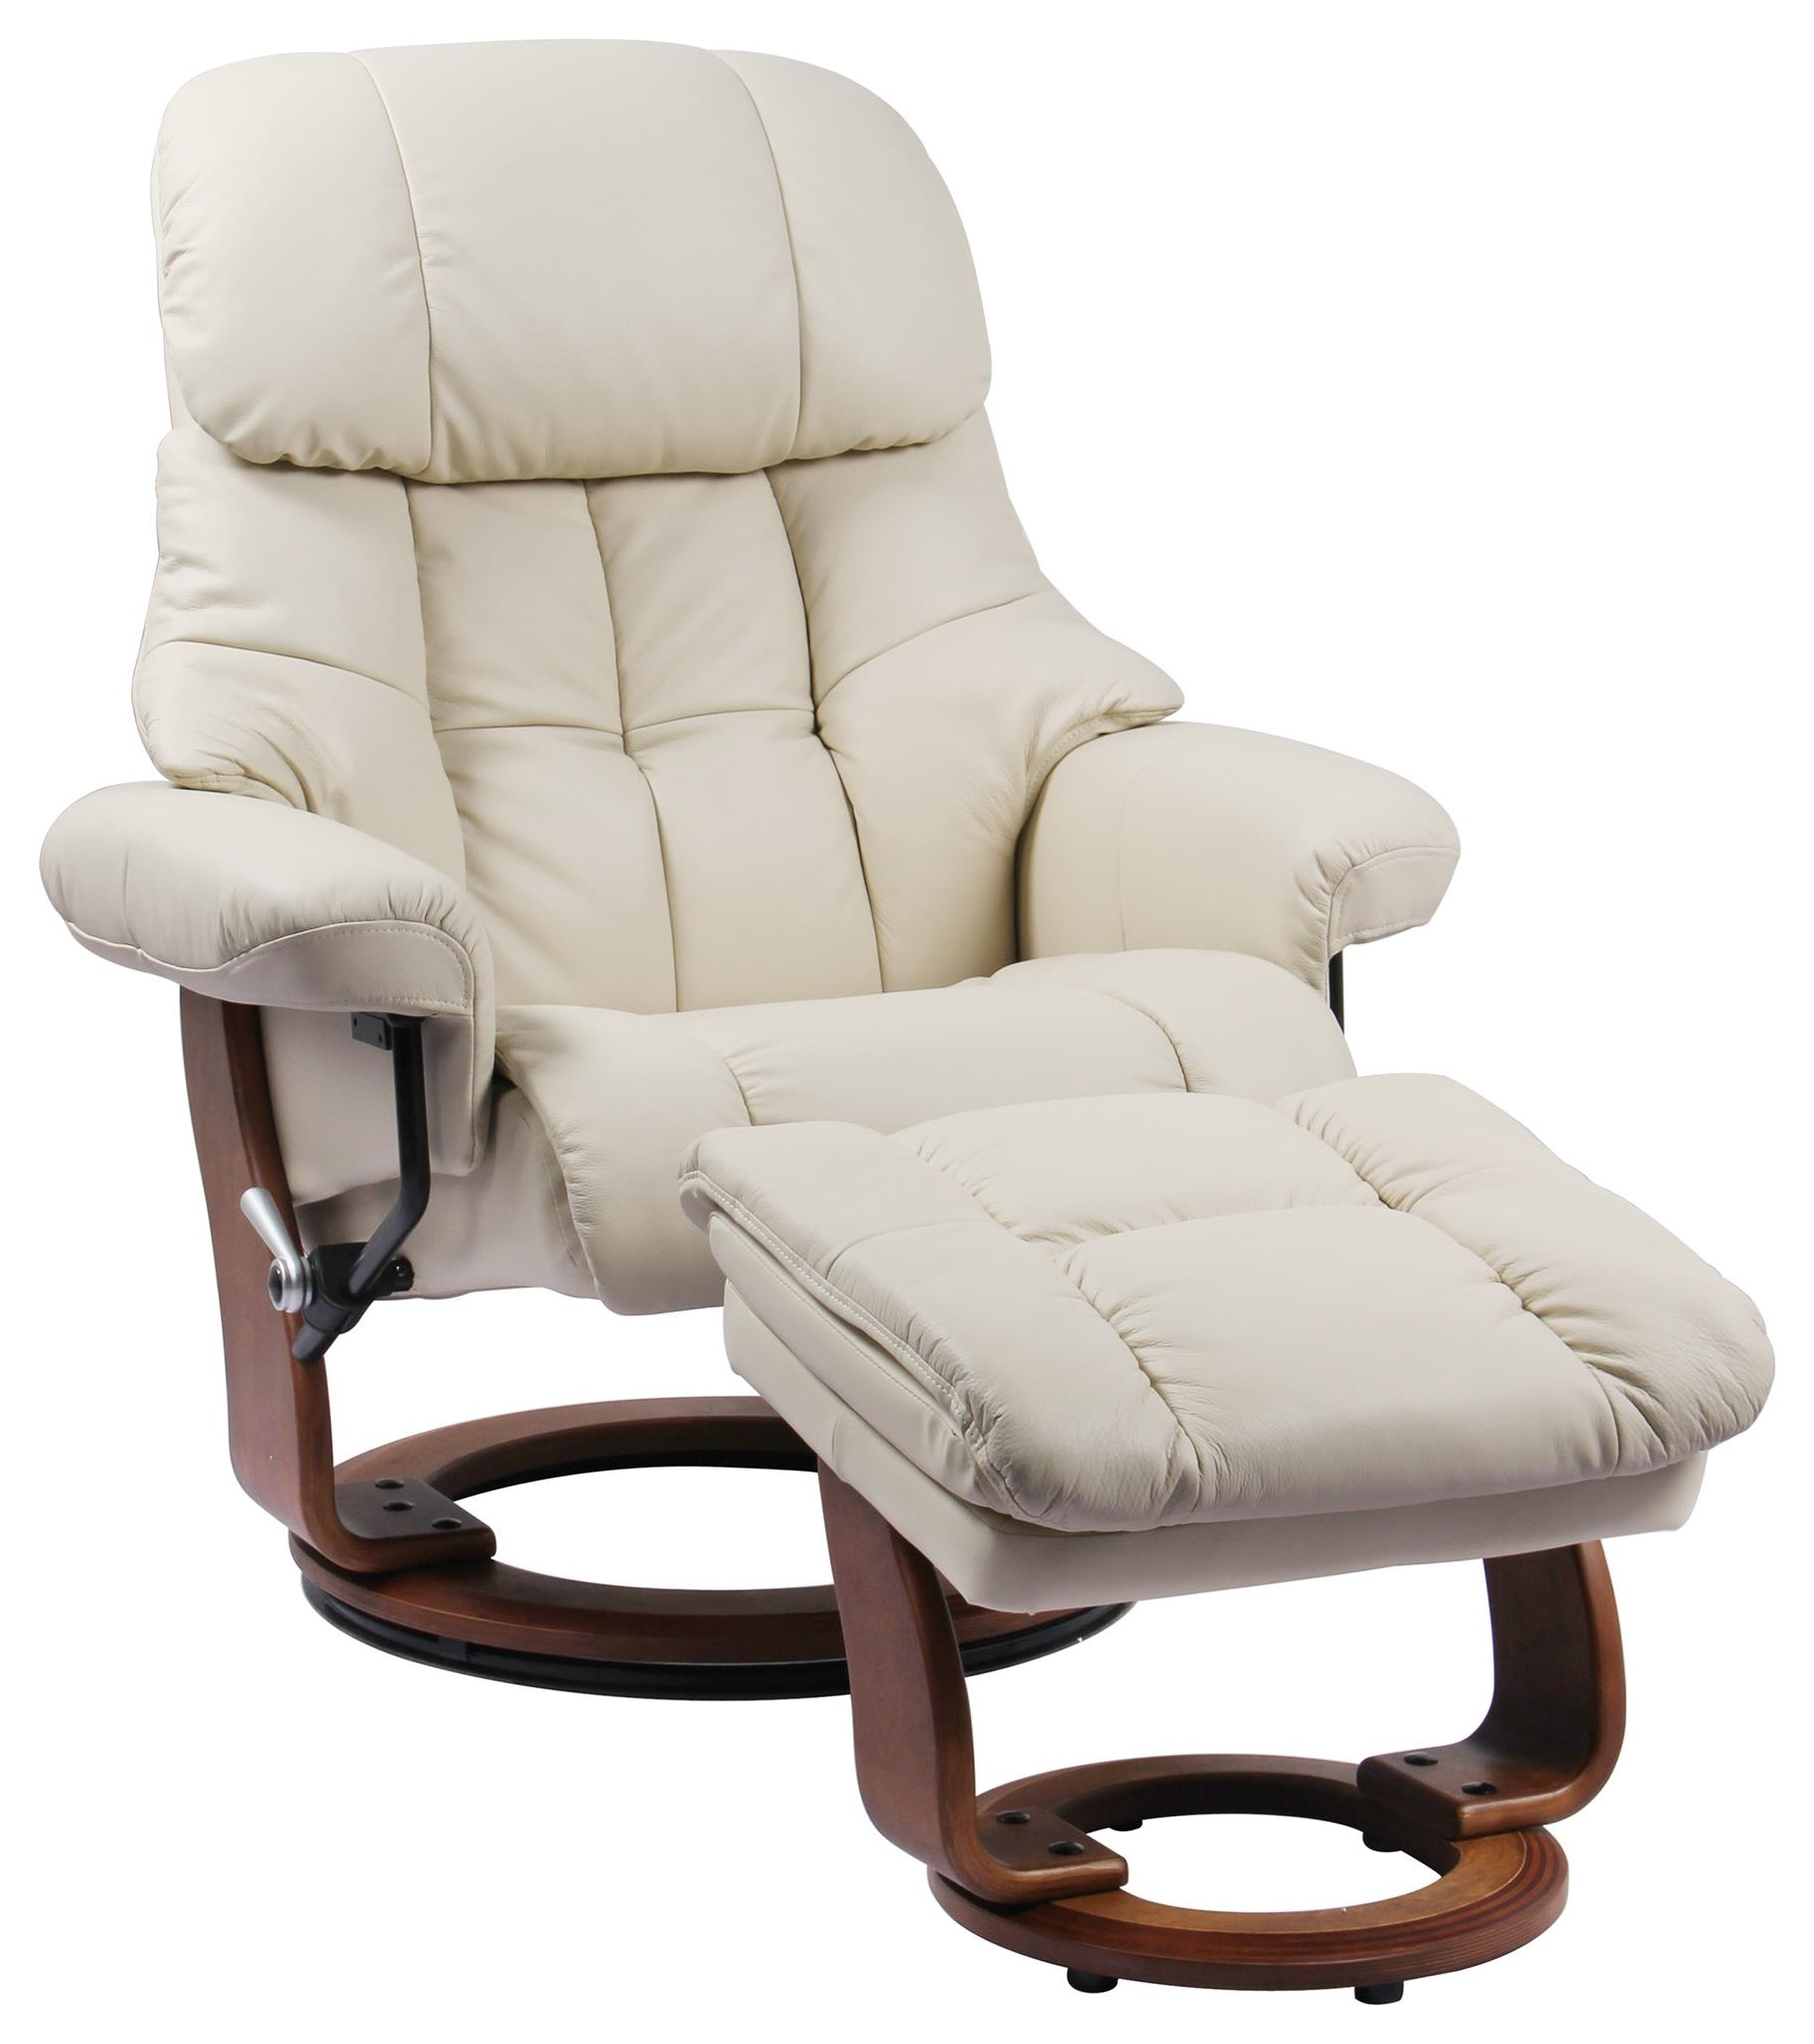 Ivory Stressless Chair/ Otto